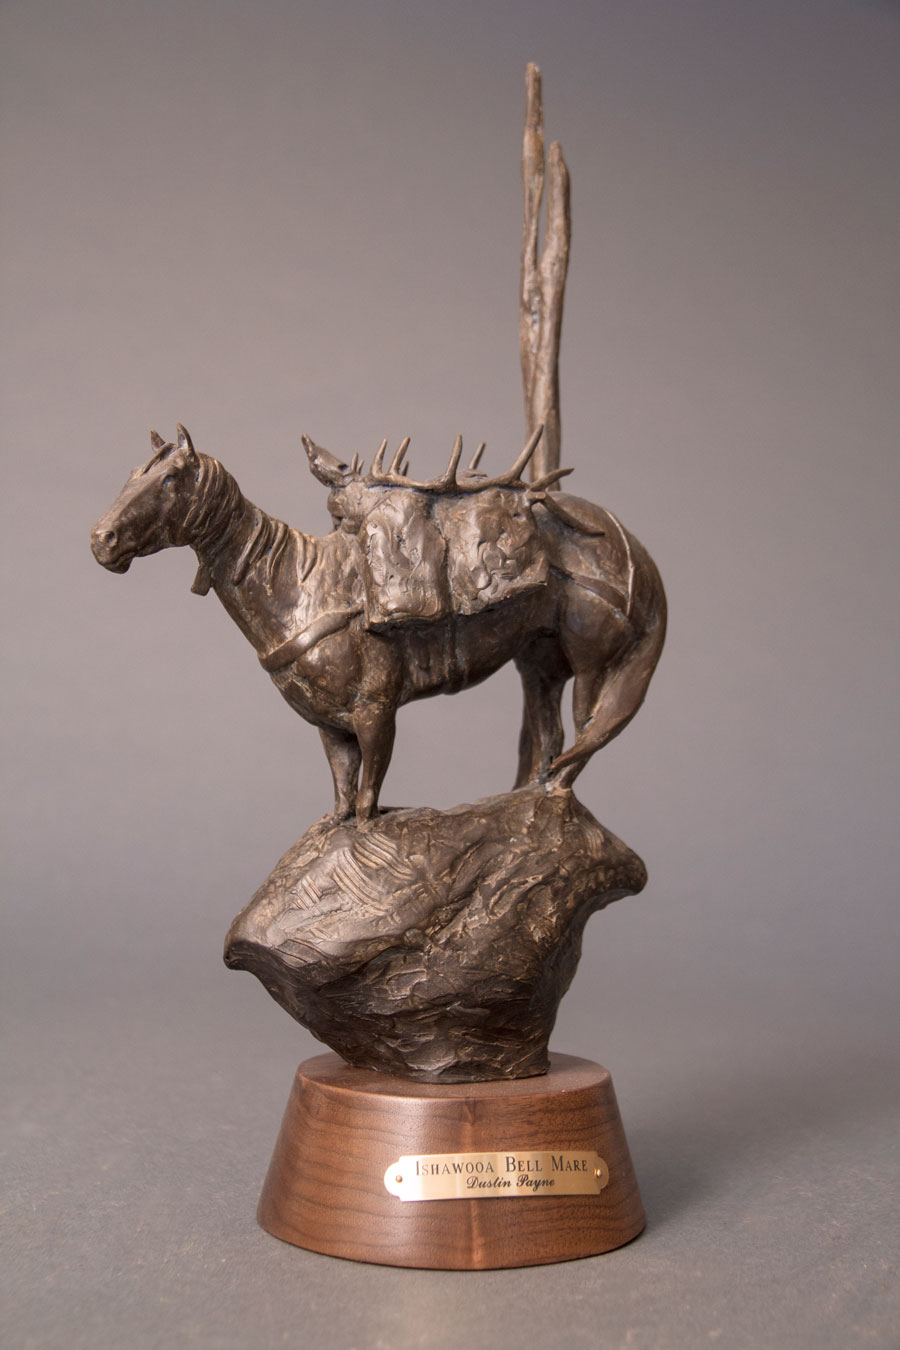 Ishawooa Bell Mare - 2014 Buffalo Bill Art Show & Sale QuickDraw